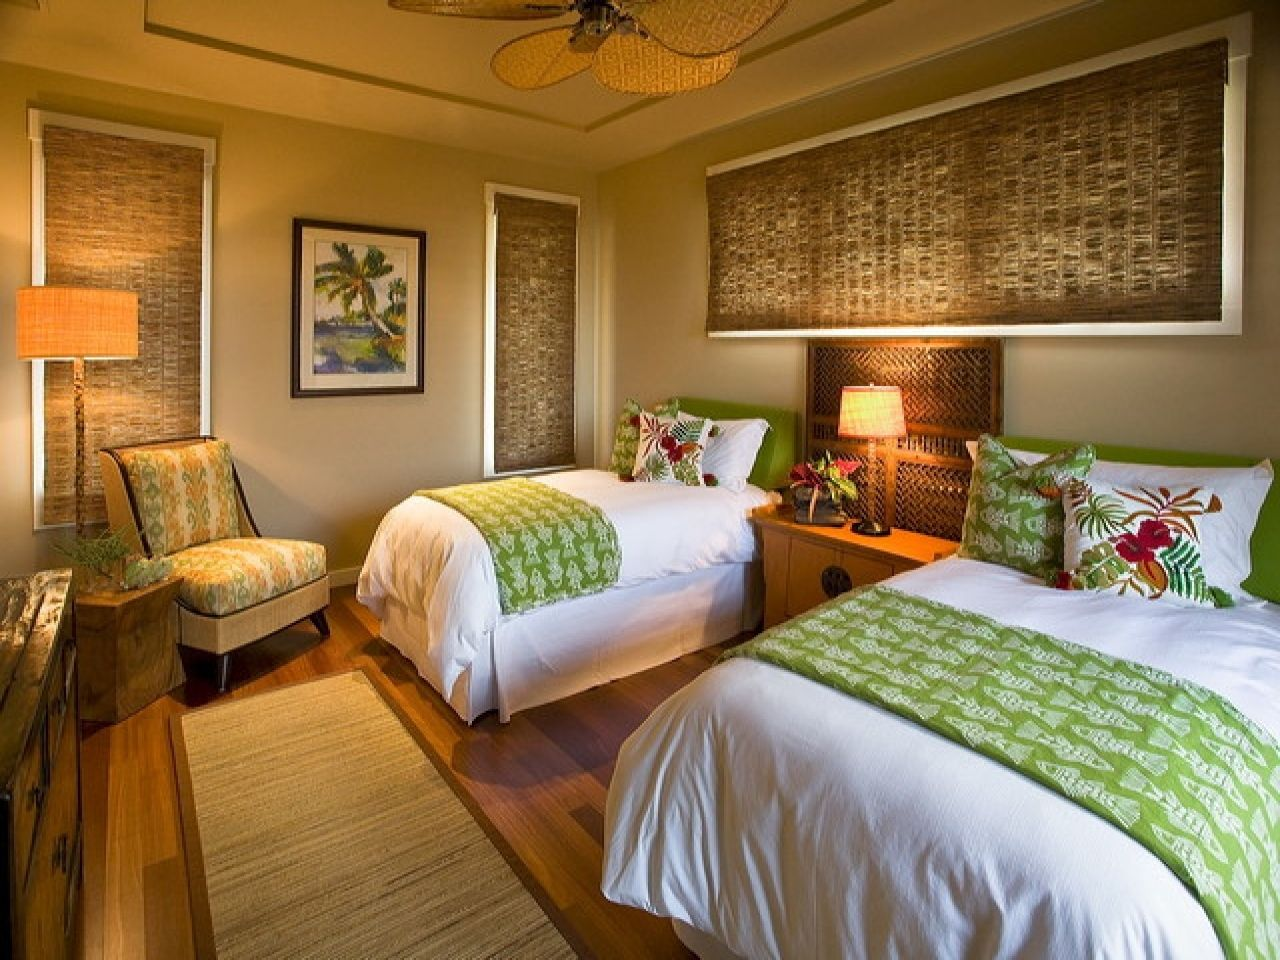 Image Result For Hawaiian Themed Home Decor